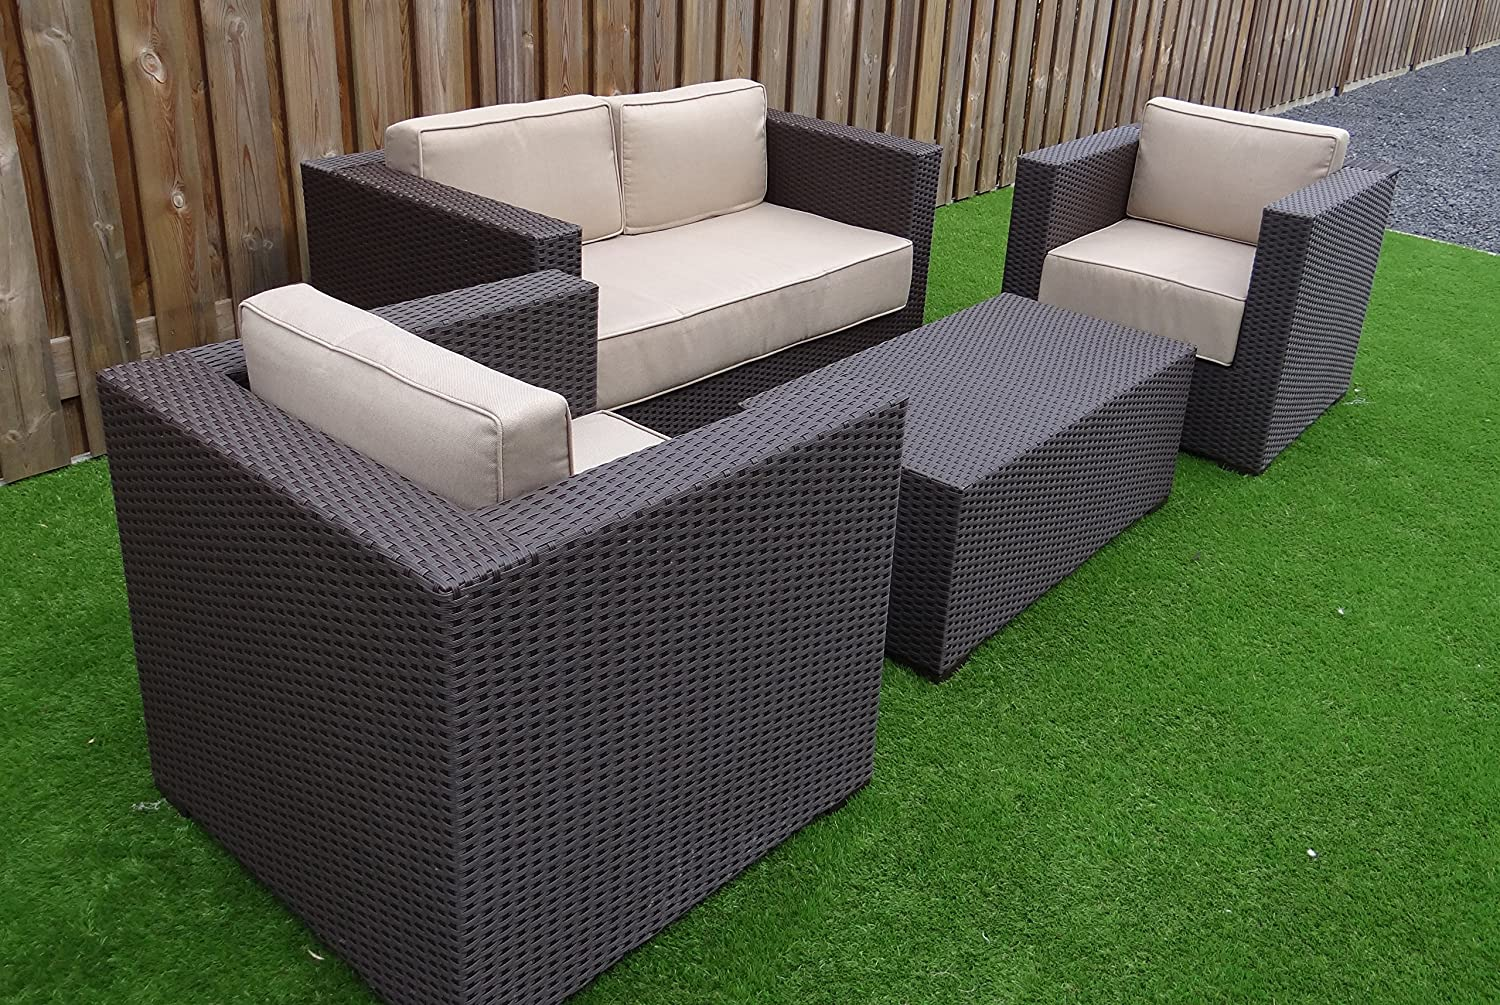 deluxe lounge set gruppe garnitur gartenm bel loungem bel polyrattan sitzgruppe braun. Black Bedroom Furniture Sets. Home Design Ideas